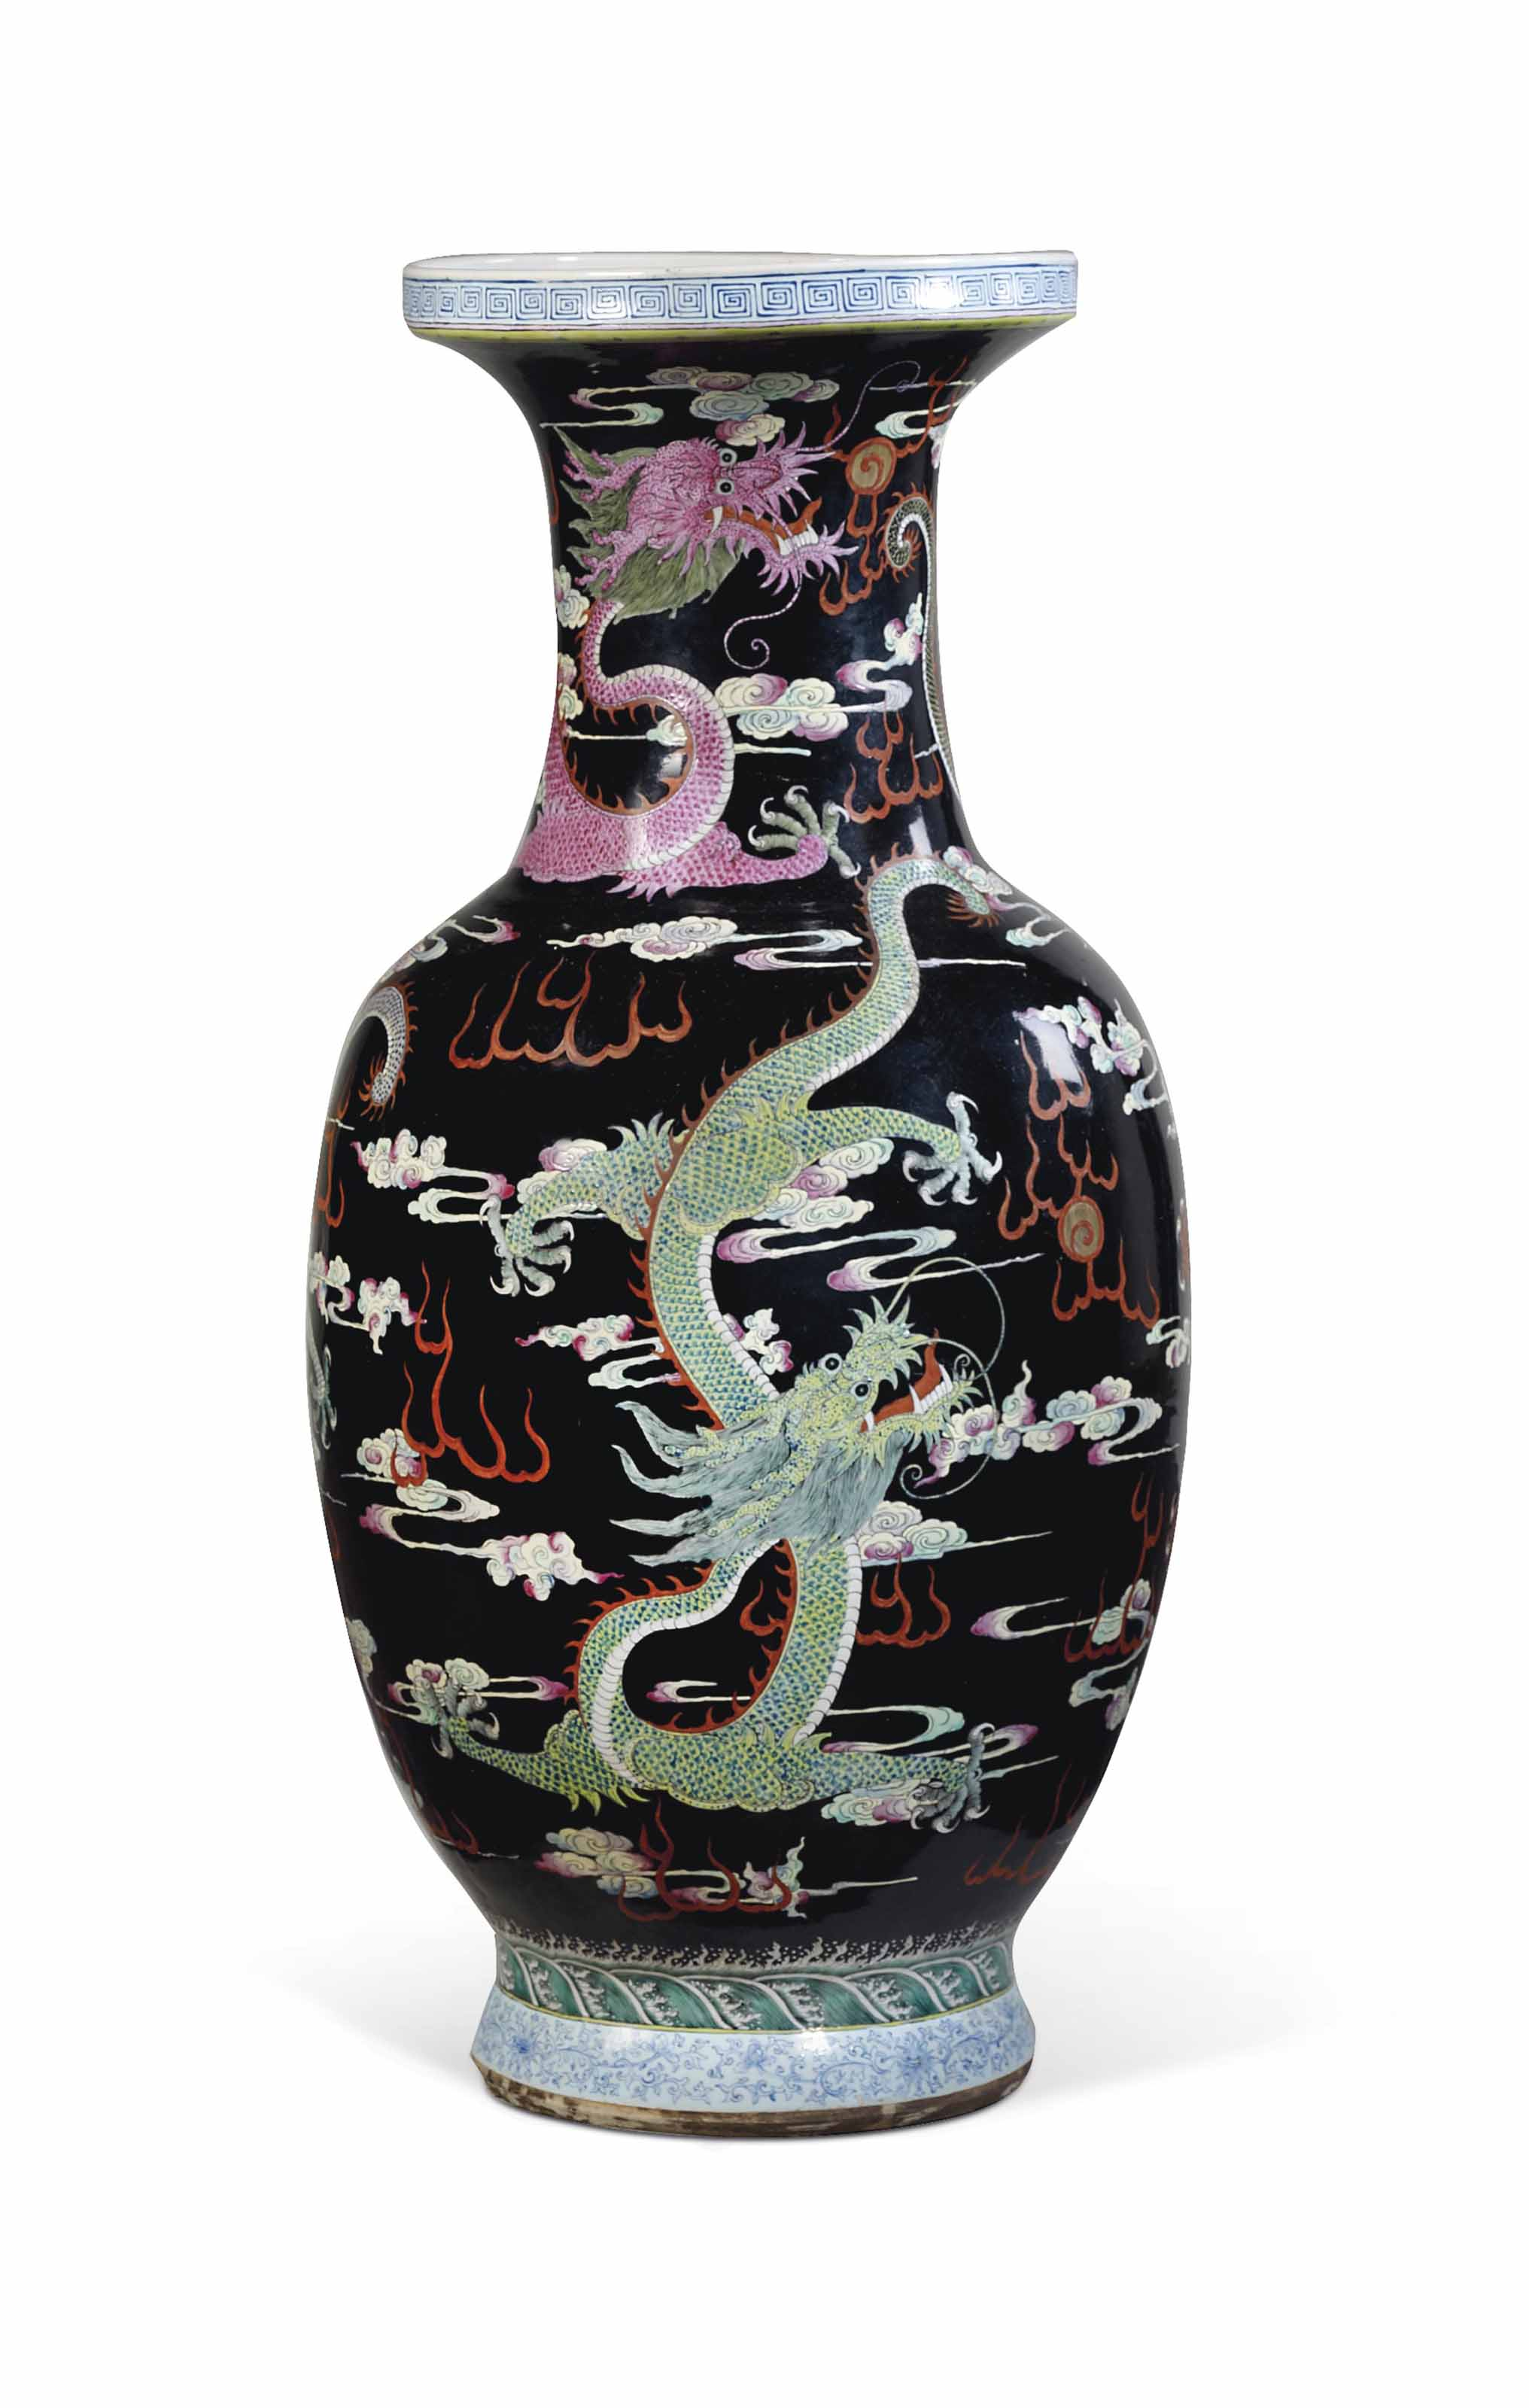 grand vase en porcelaine polychrome a fond noir chine dynastie qing epoque guangxu 1875. Black Bedroom Furniture Sets. Home Design Ideas